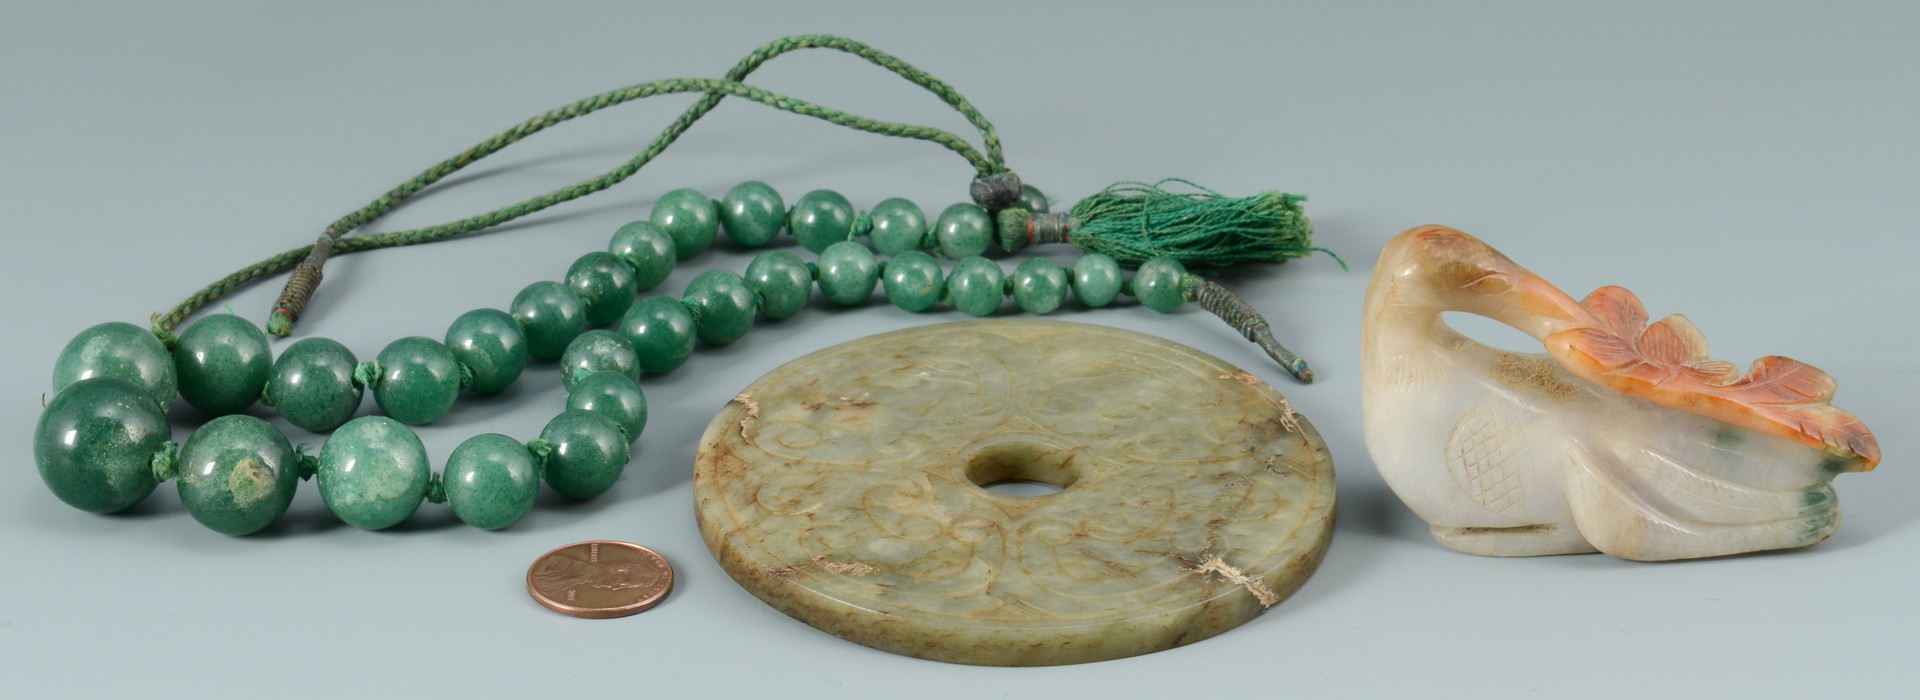 Lot 14: 3 Chinese Jade Items: Stork, Beads, Disc